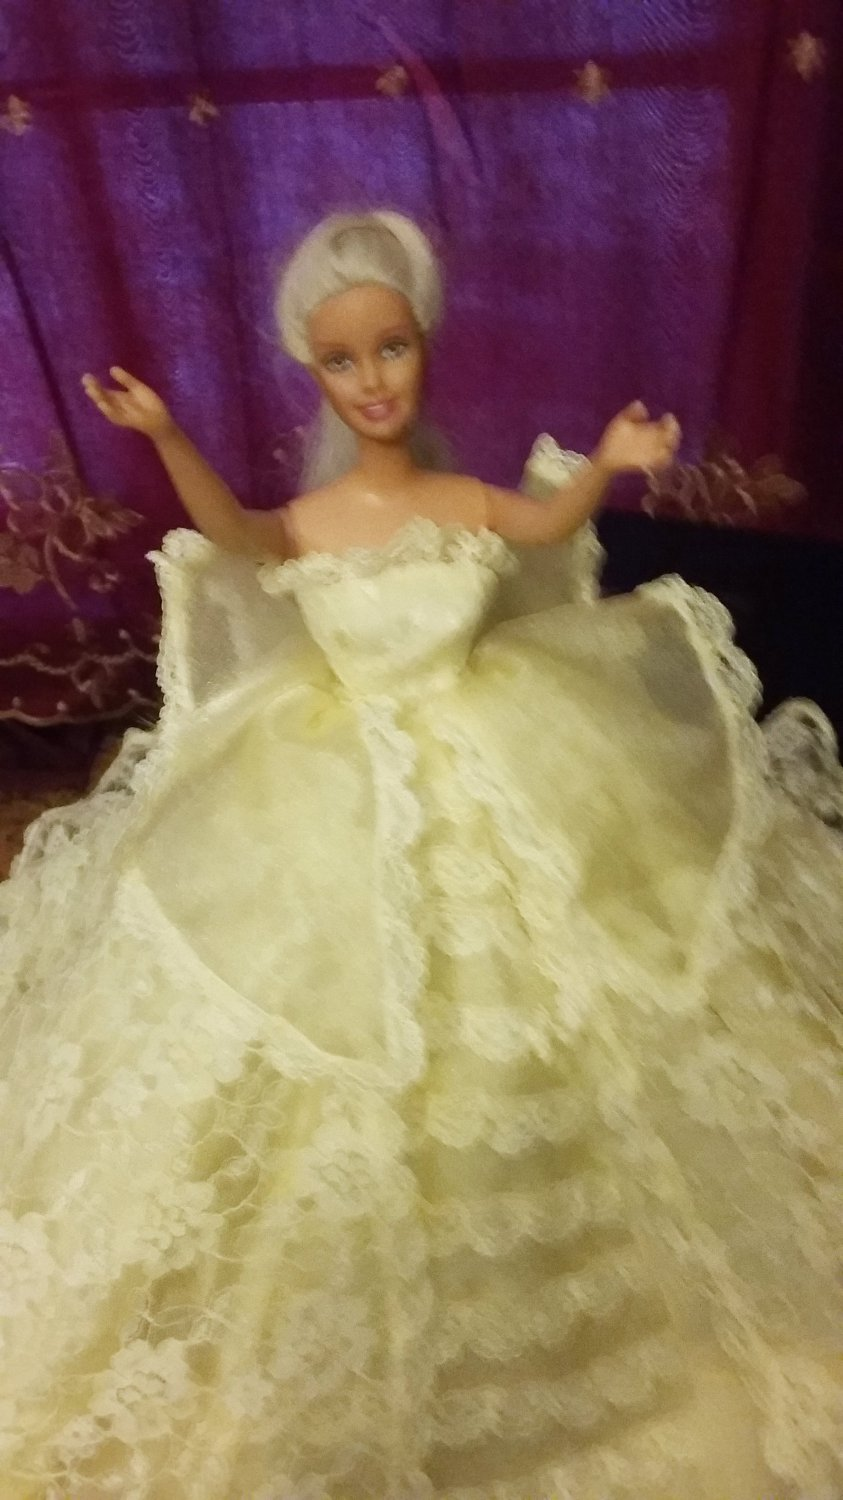 Barbie Doll Fashion Handmade Girls Gift Royalty Yellow Wedding Party Bridal Gown Dress Clothes